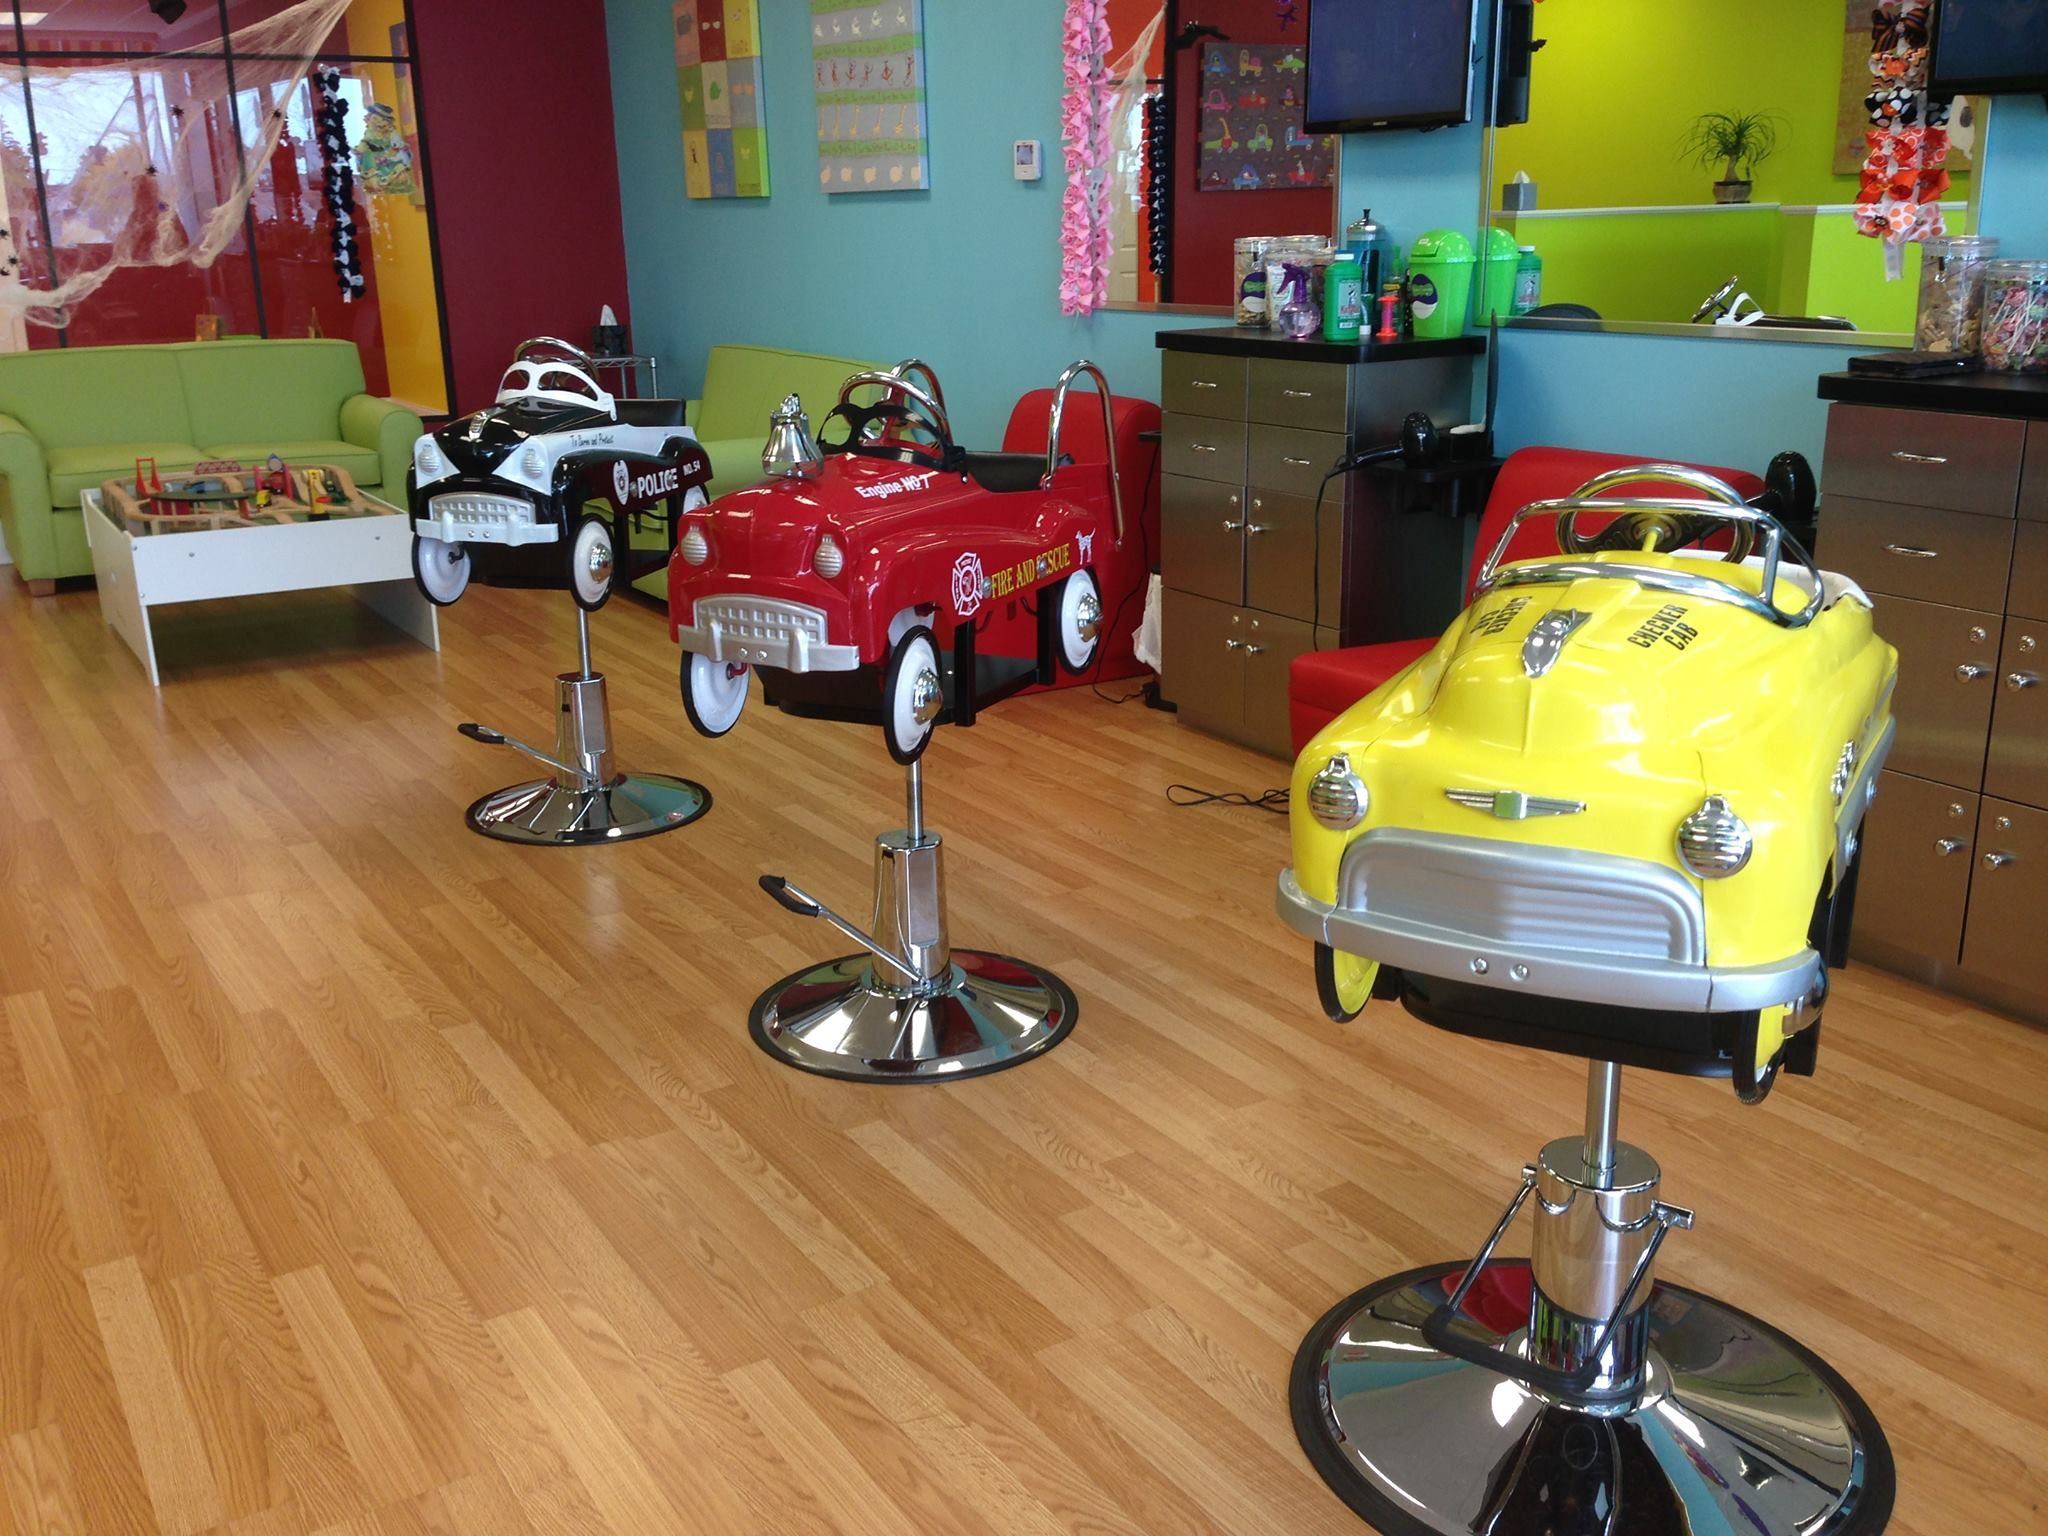 Pigtails Crewcuts Haircuts For Kids Rochester In Rochester Ny